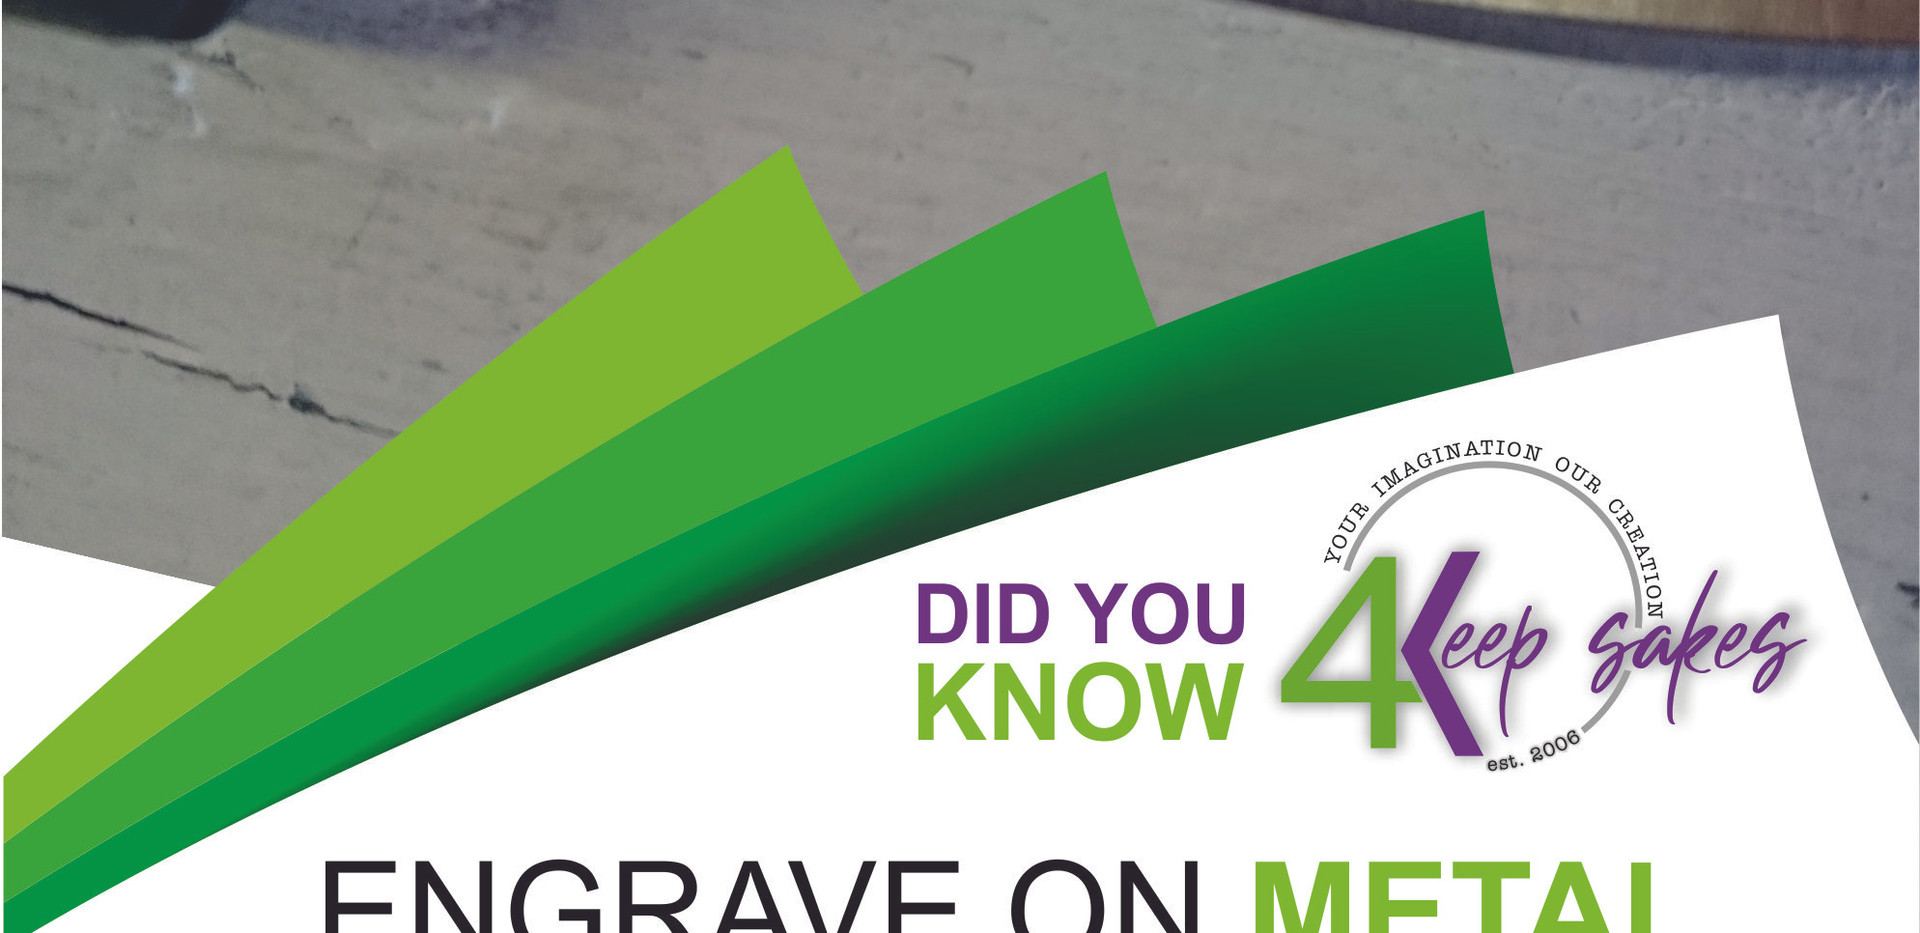 Did you know 4keepsake engrave on knives